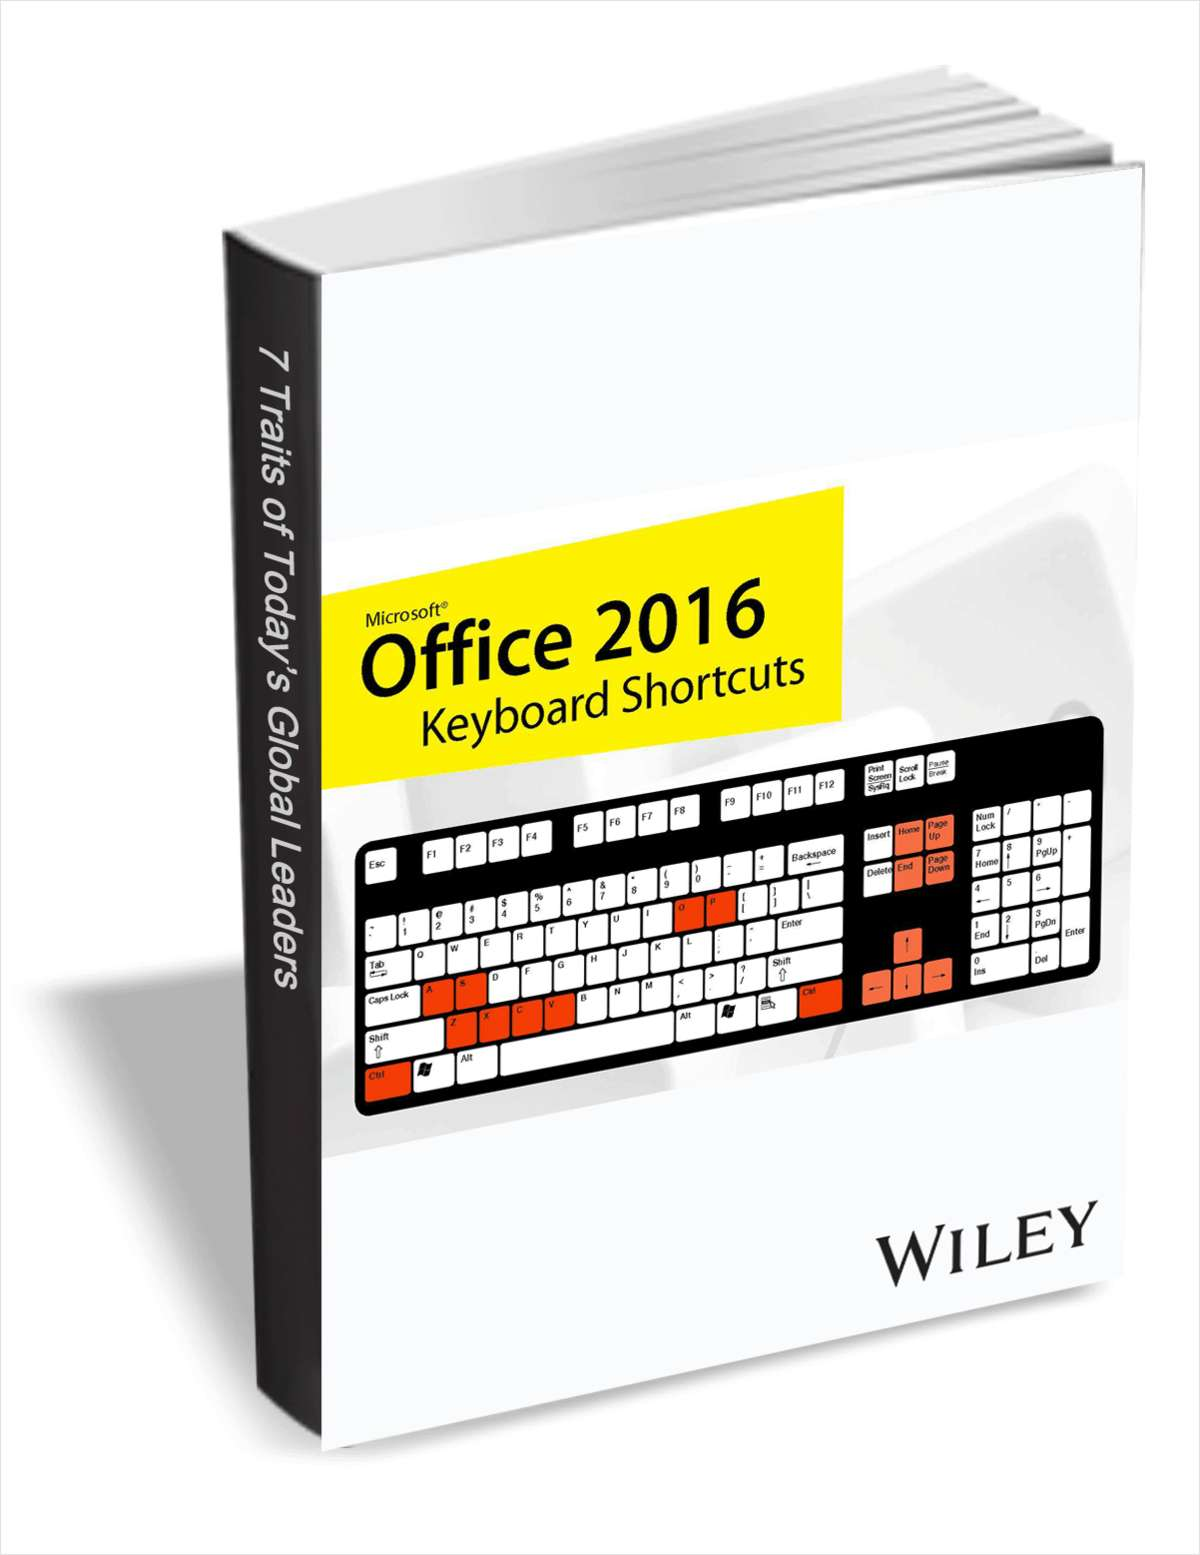 Office 2016 Keyboard Shortcuts